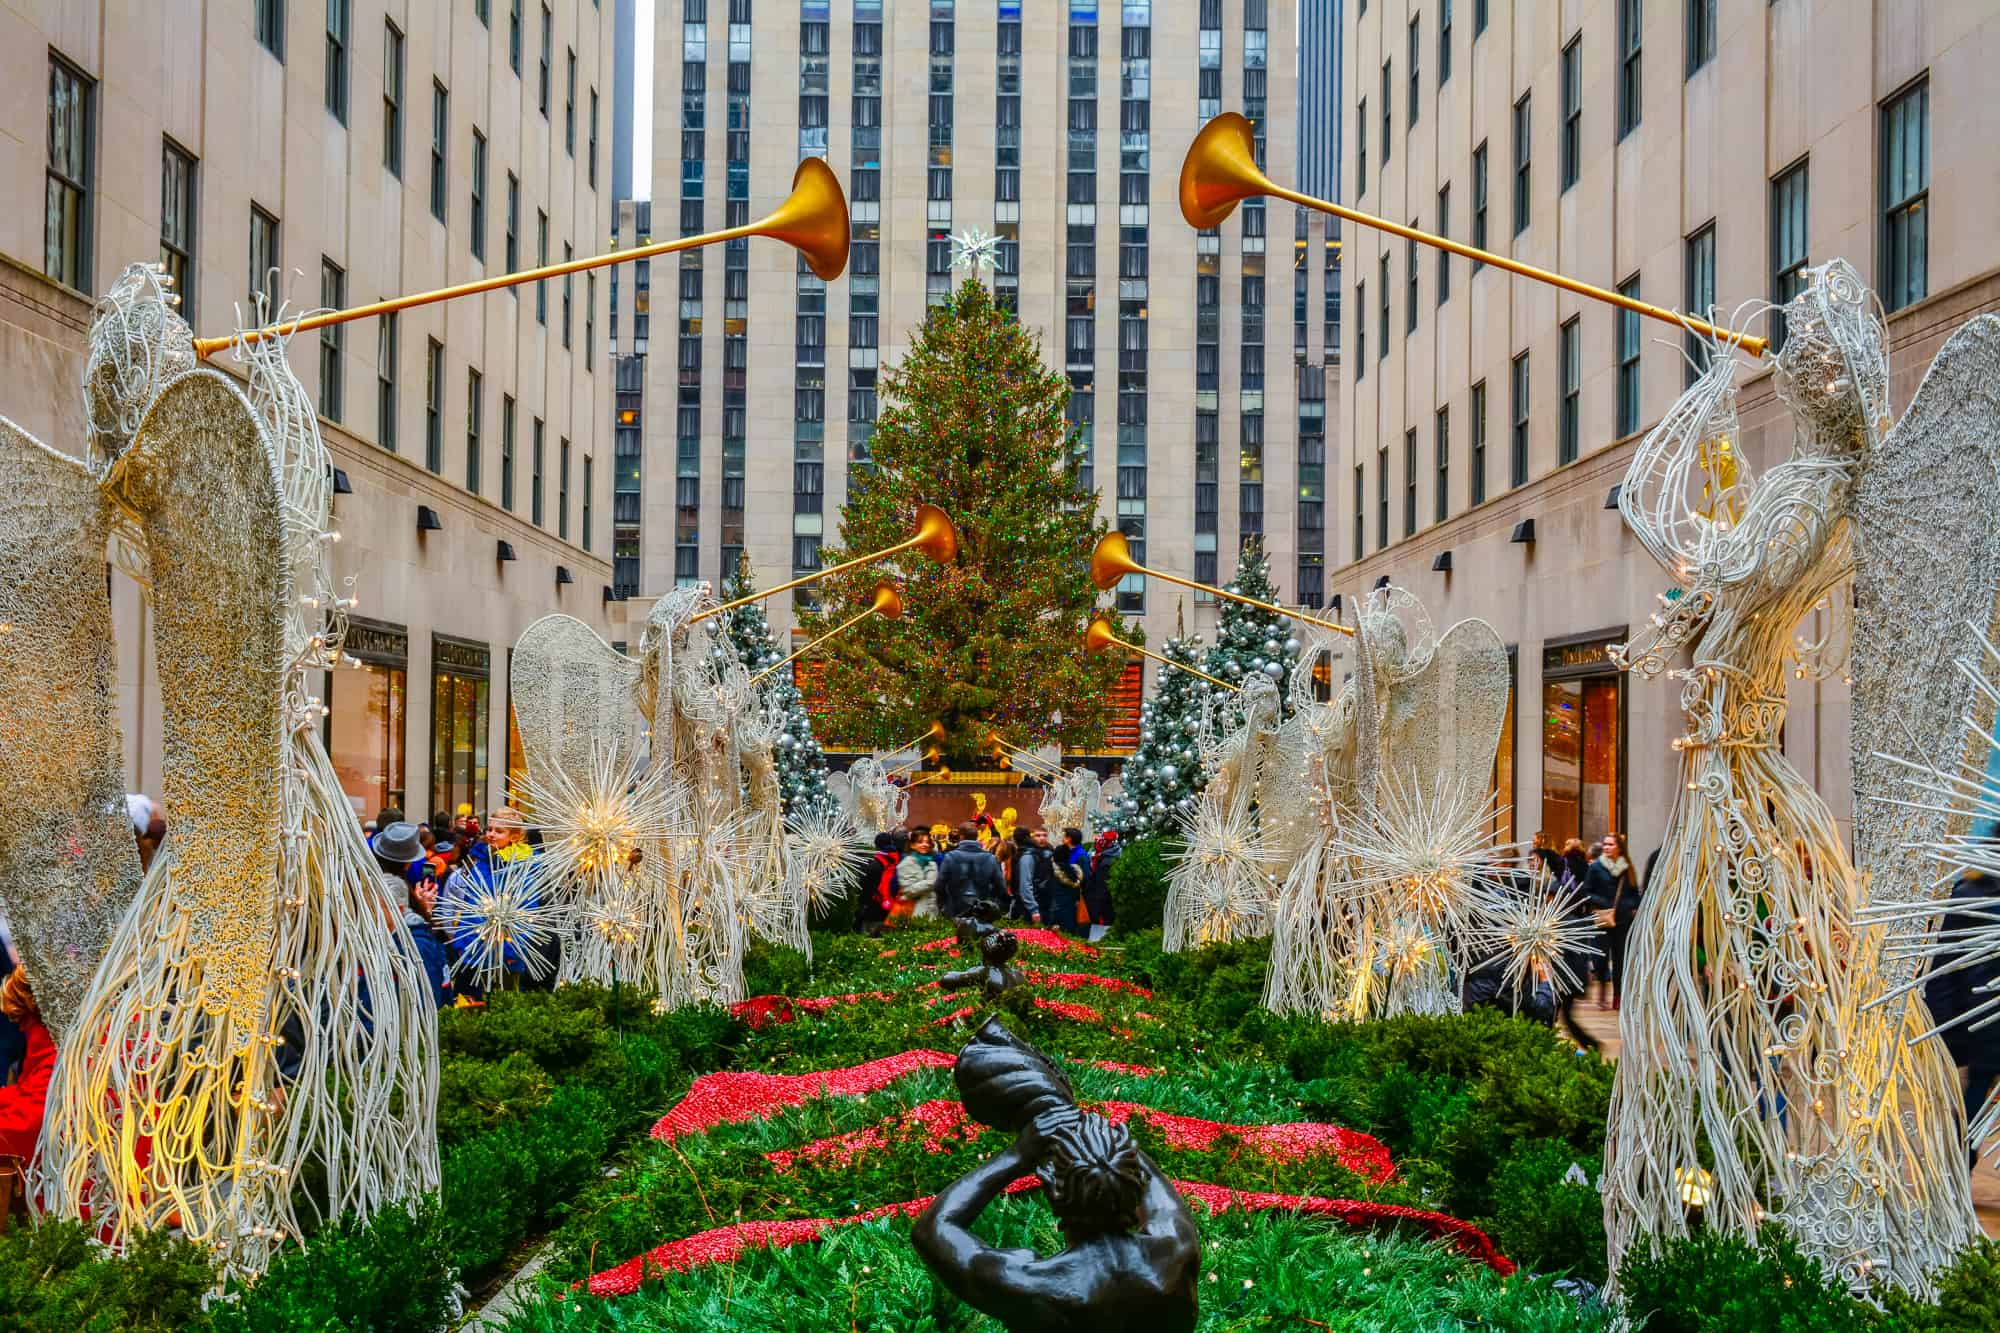 The Best Holiday & Christmas Events Near Me In 2019